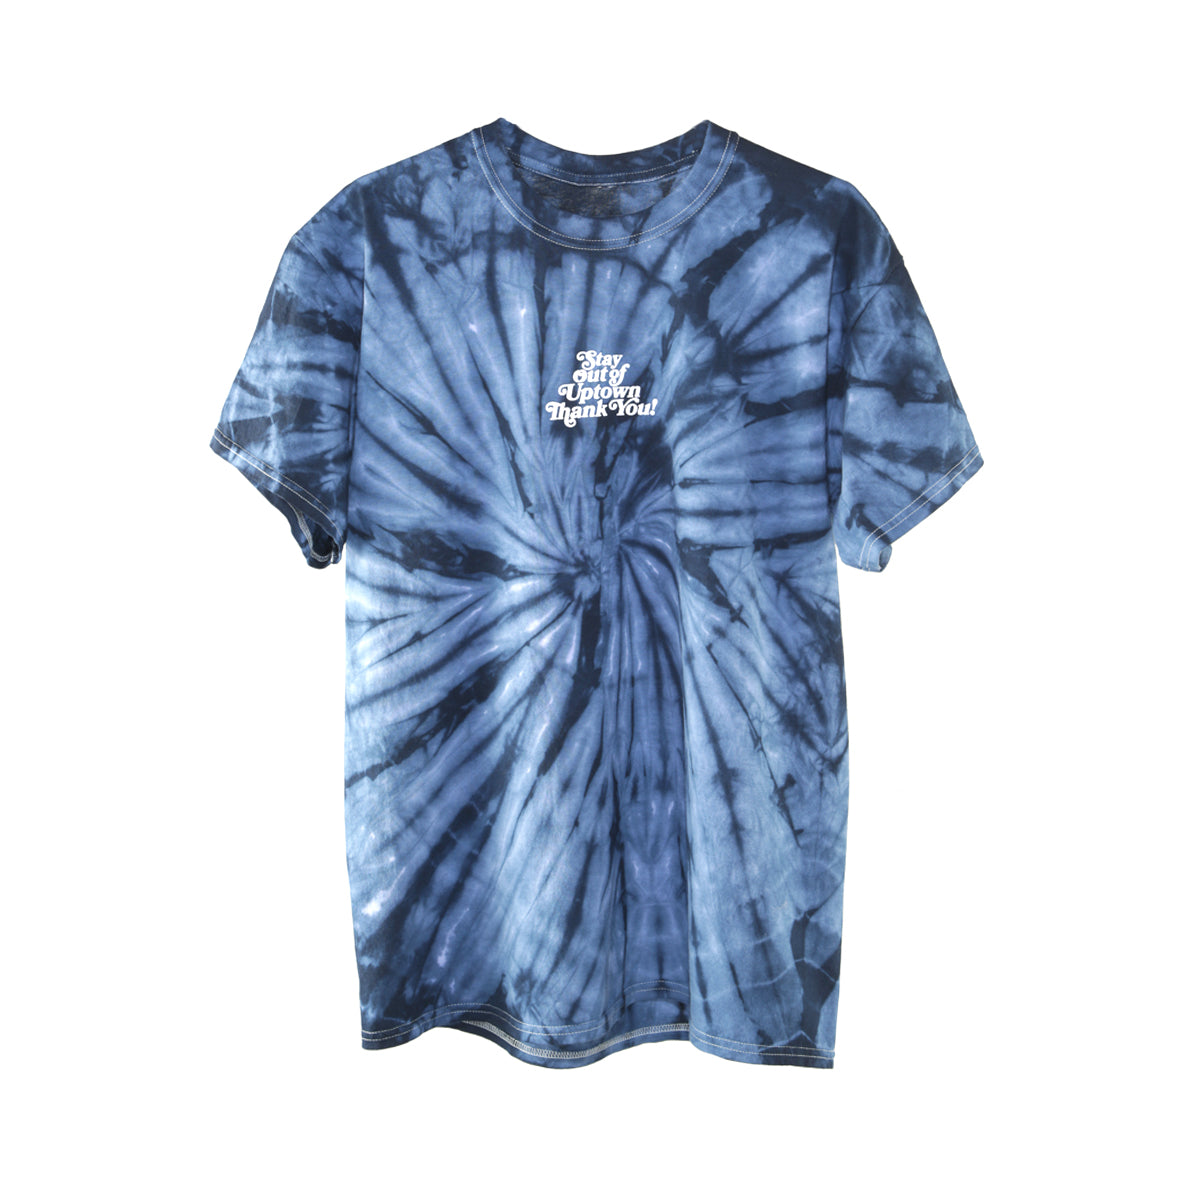 Stay Out of Uptown Tie Dye - Spider Navy